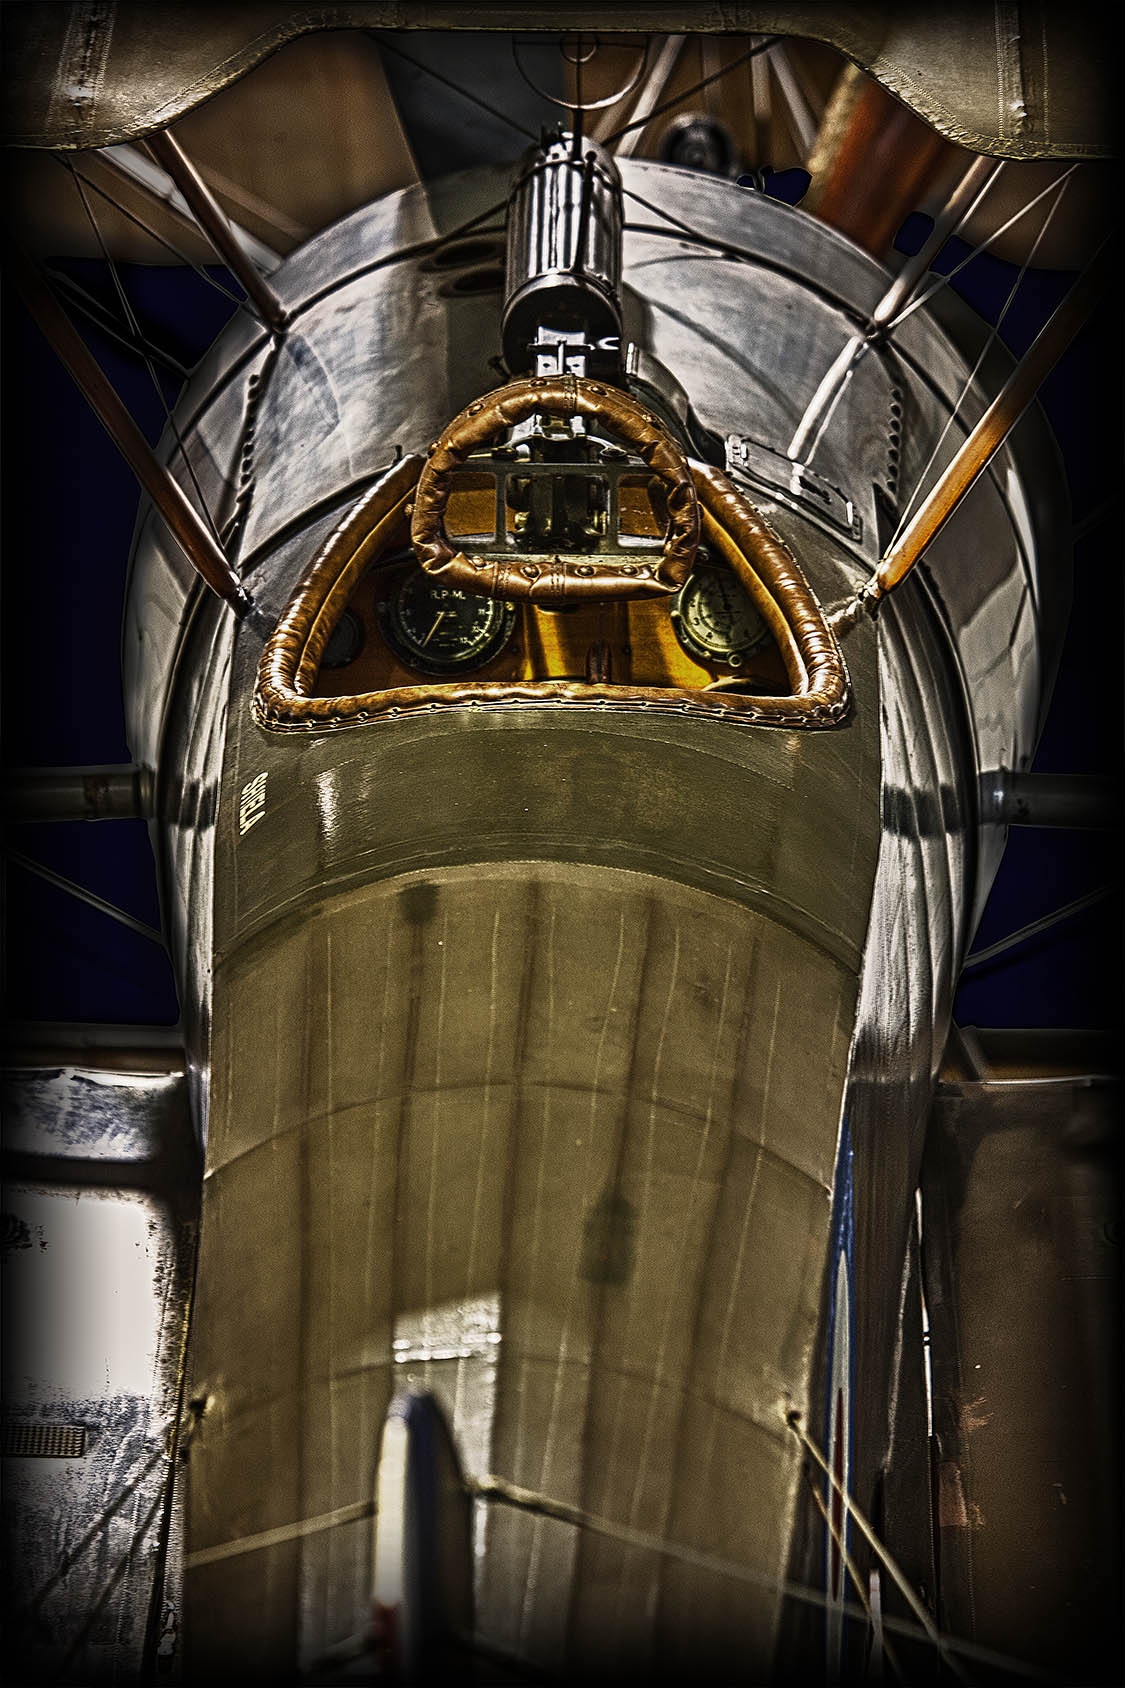 World War 1 Aircraft by The Photo Nomad